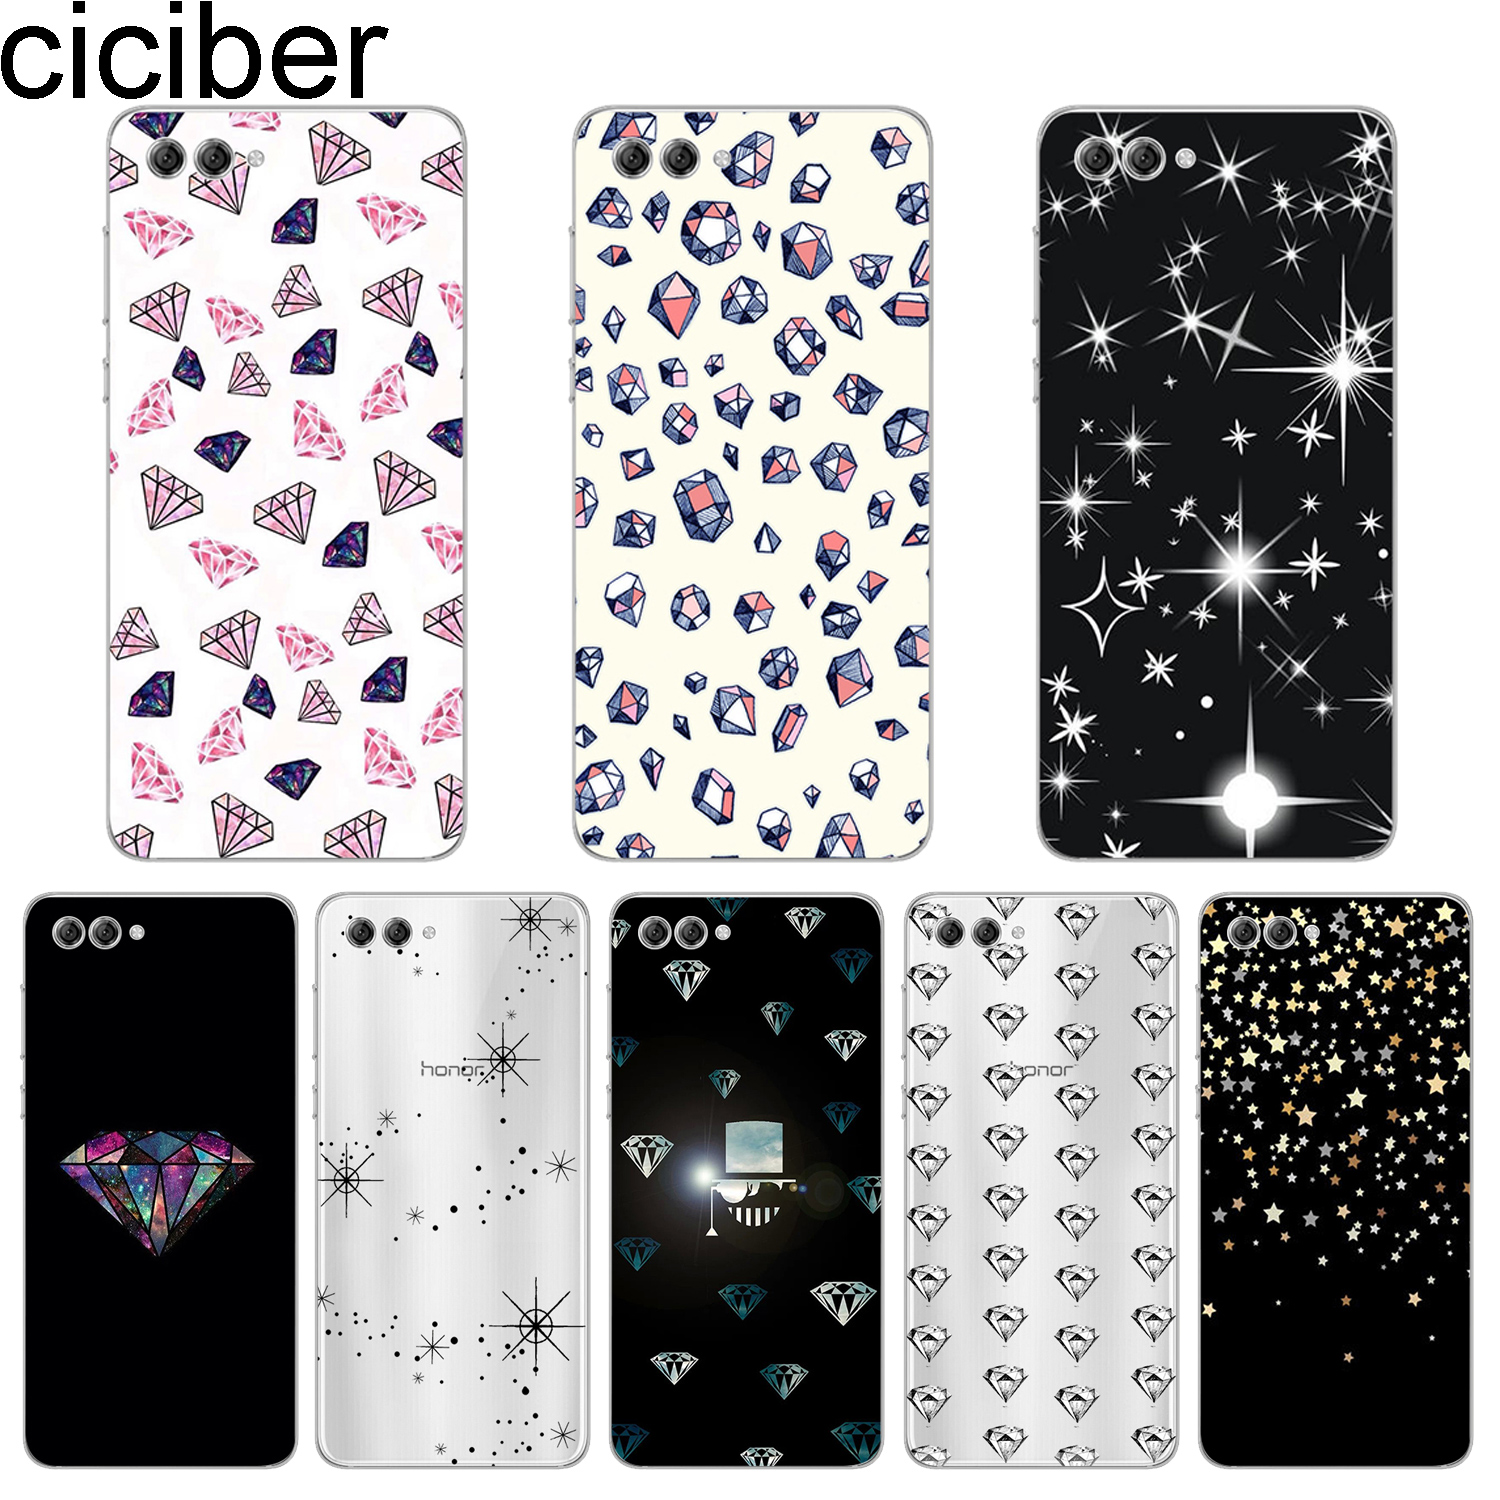 ciciber For <font><b>Y</b></font> 9 7 6 <font><b>5</b></font> 3 Prime Pro 2017 <font><b>2018</b></font> 2019 Soft TPU Phone Cases For Honor V 9 8 10 Lite Pro X C Shiny star diamond <font><b>Fundas</b></font> image